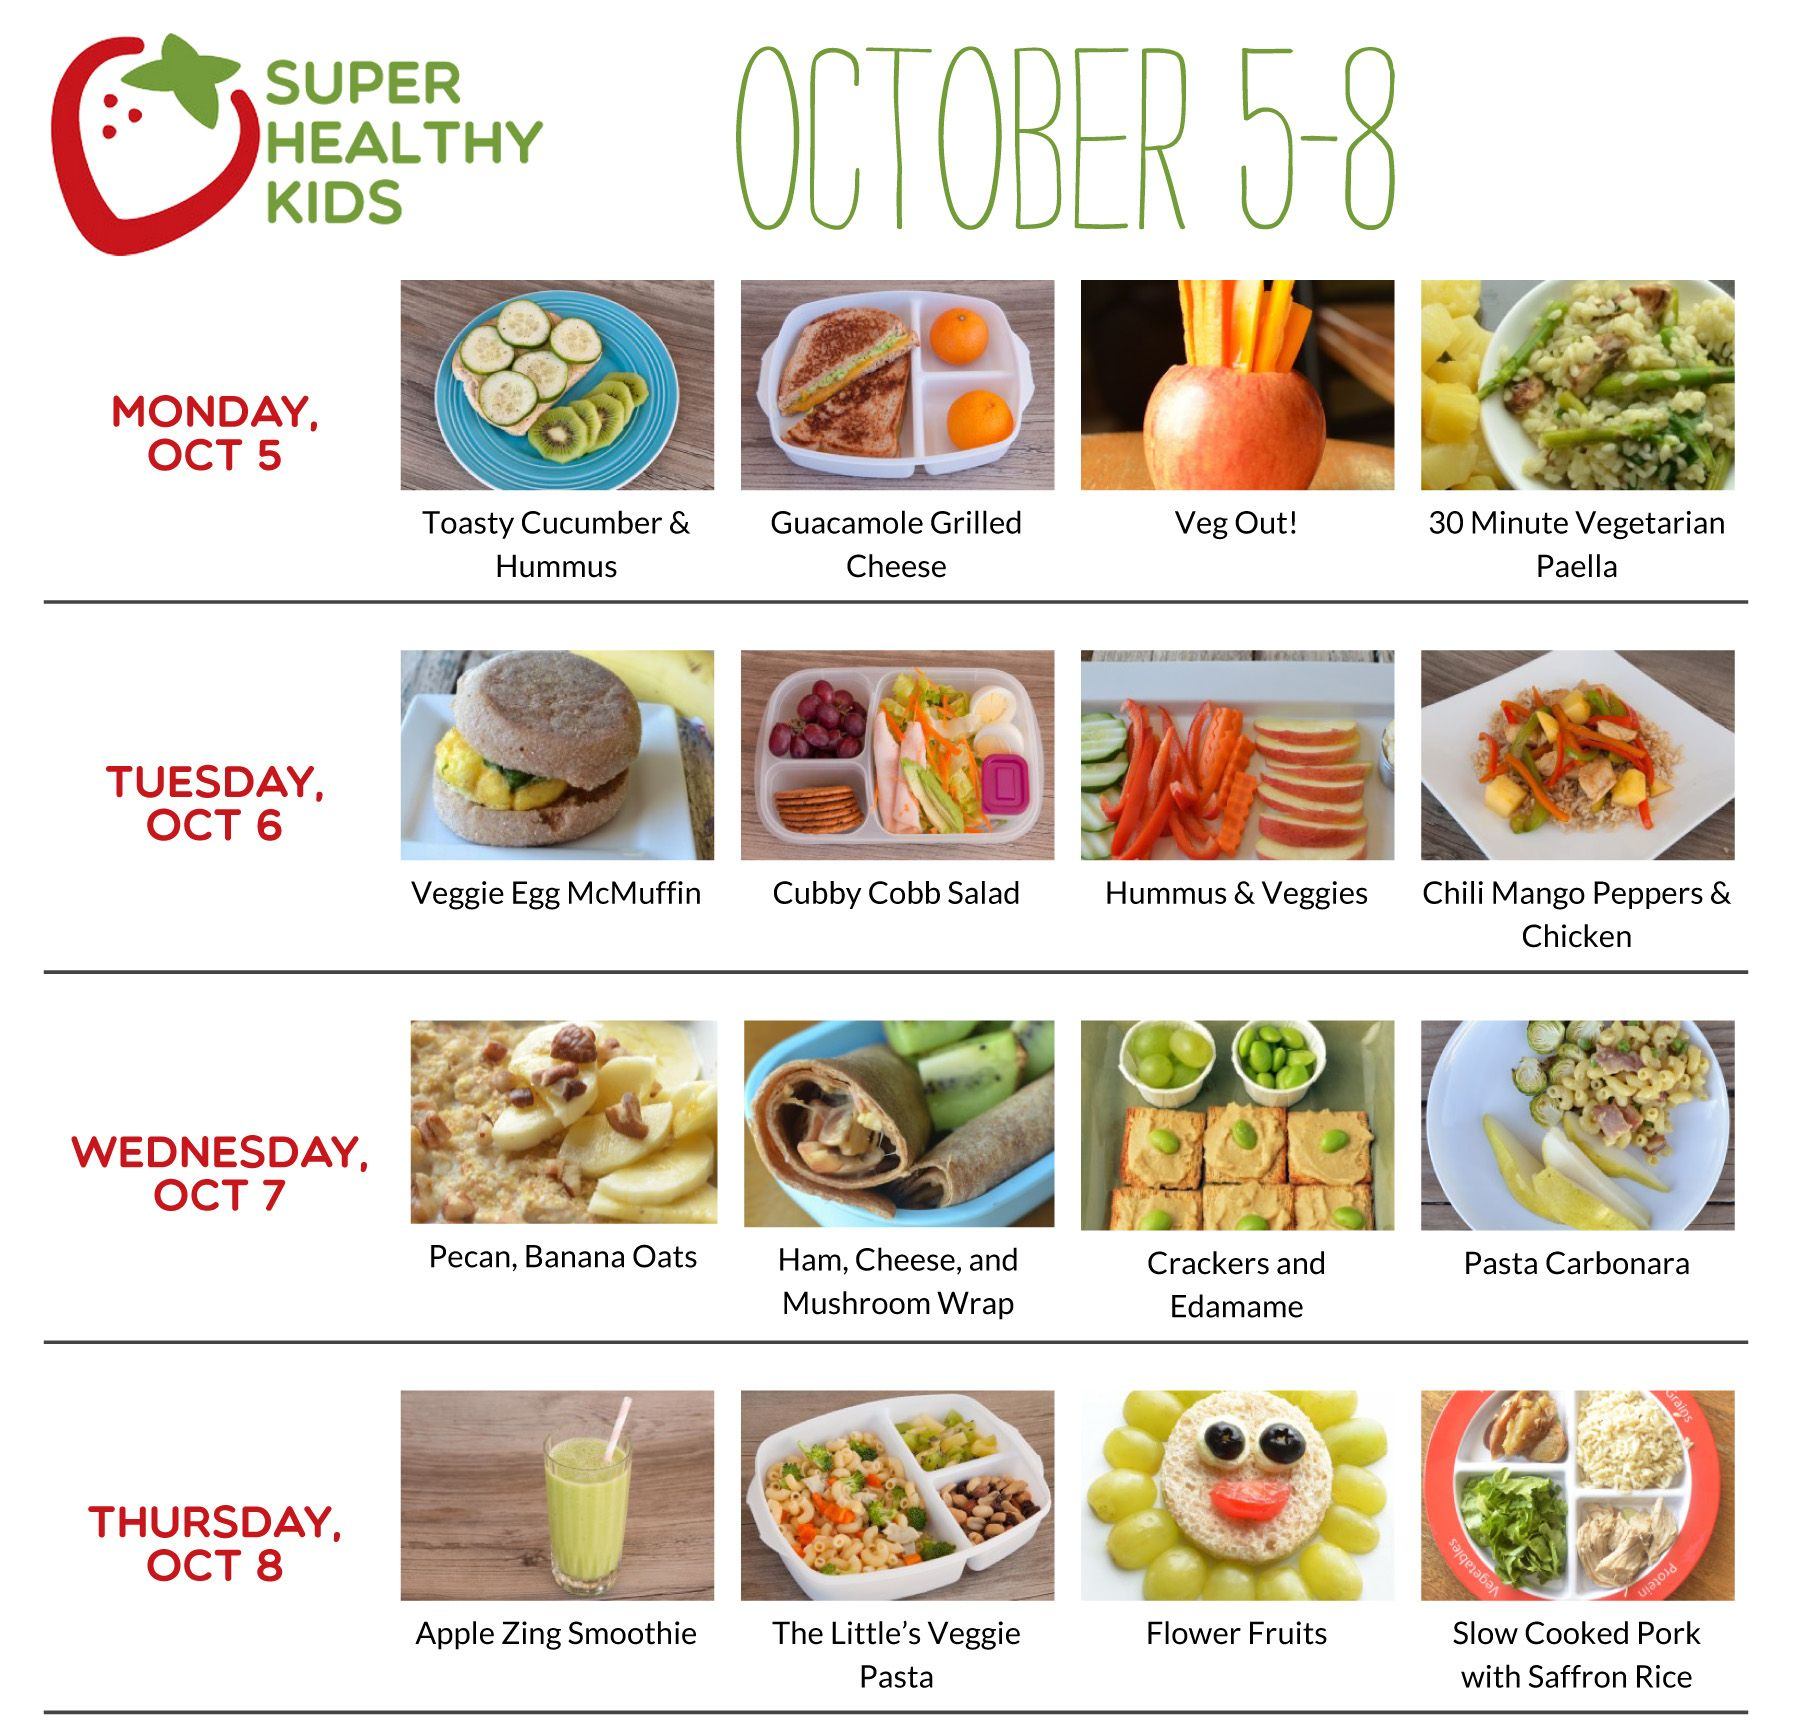 Healthy Meal Plans Super Healthy Kids Easy Meals For Kids Healthy Meal Plans Meal Planning